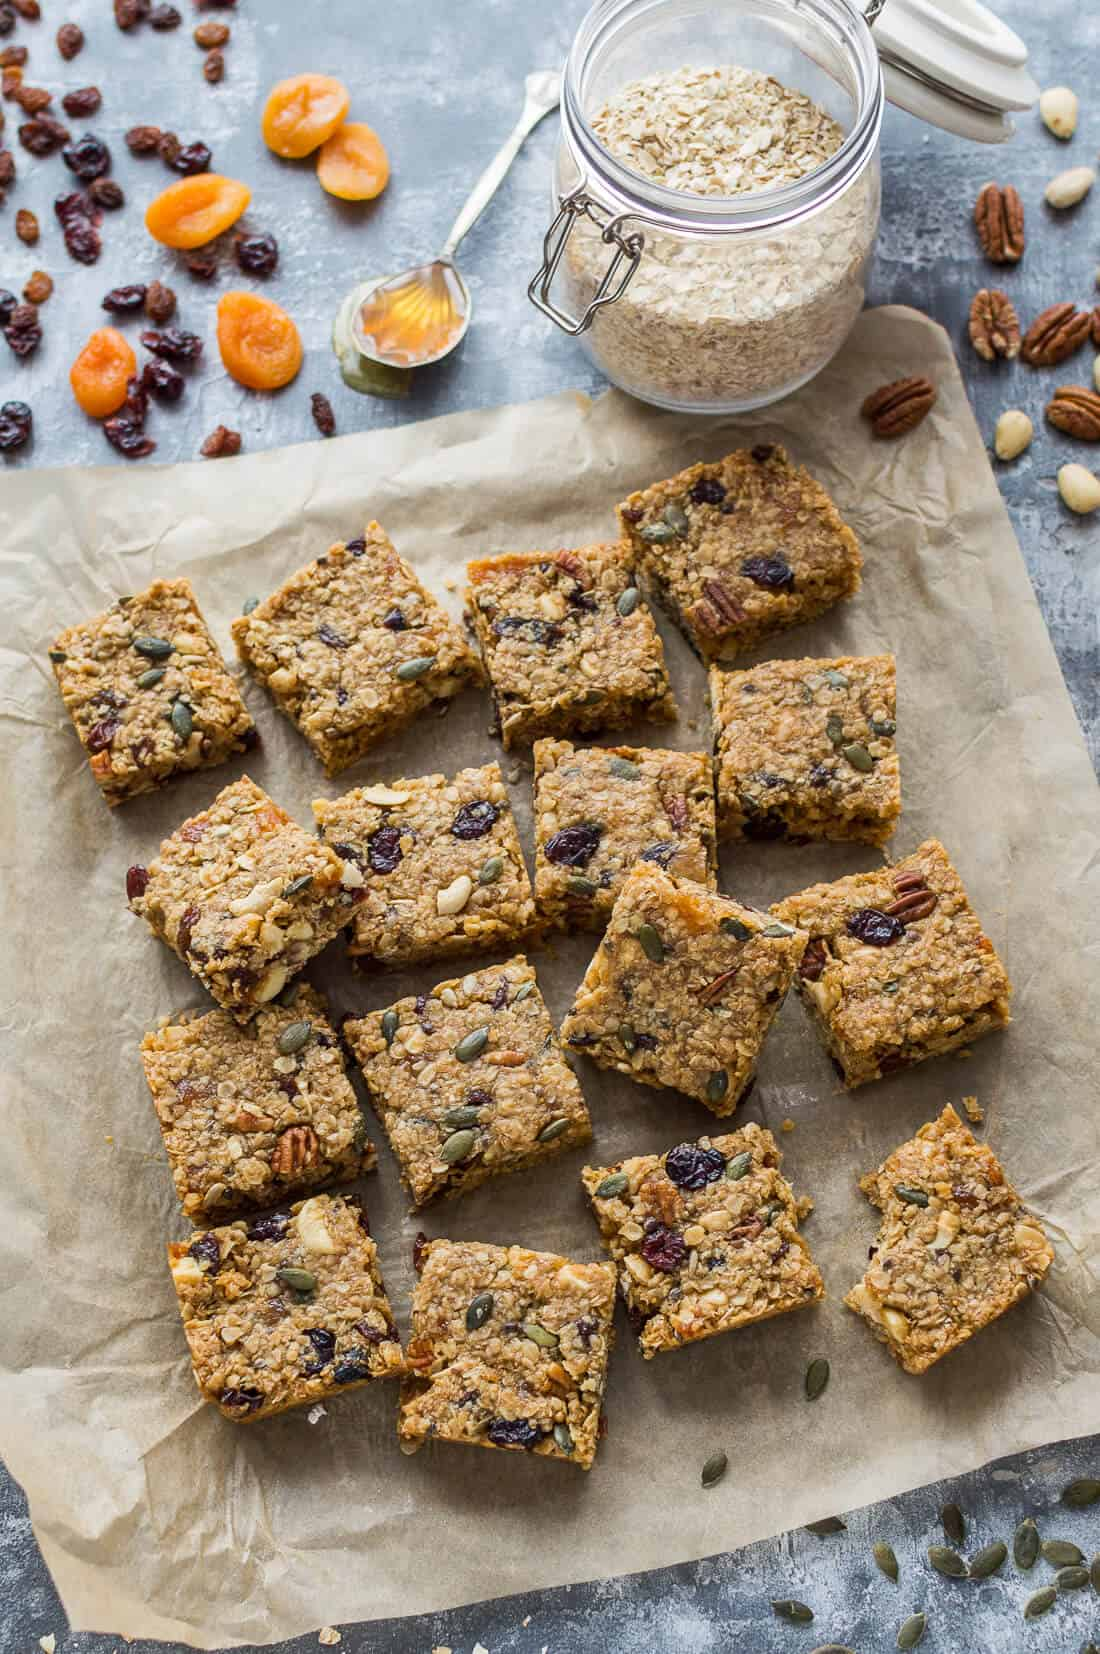 Squares of dairy free fruit and nut flapjacks (oat cookie bars) on baking parchment with a jar of oats and fruits, nuts and seeds